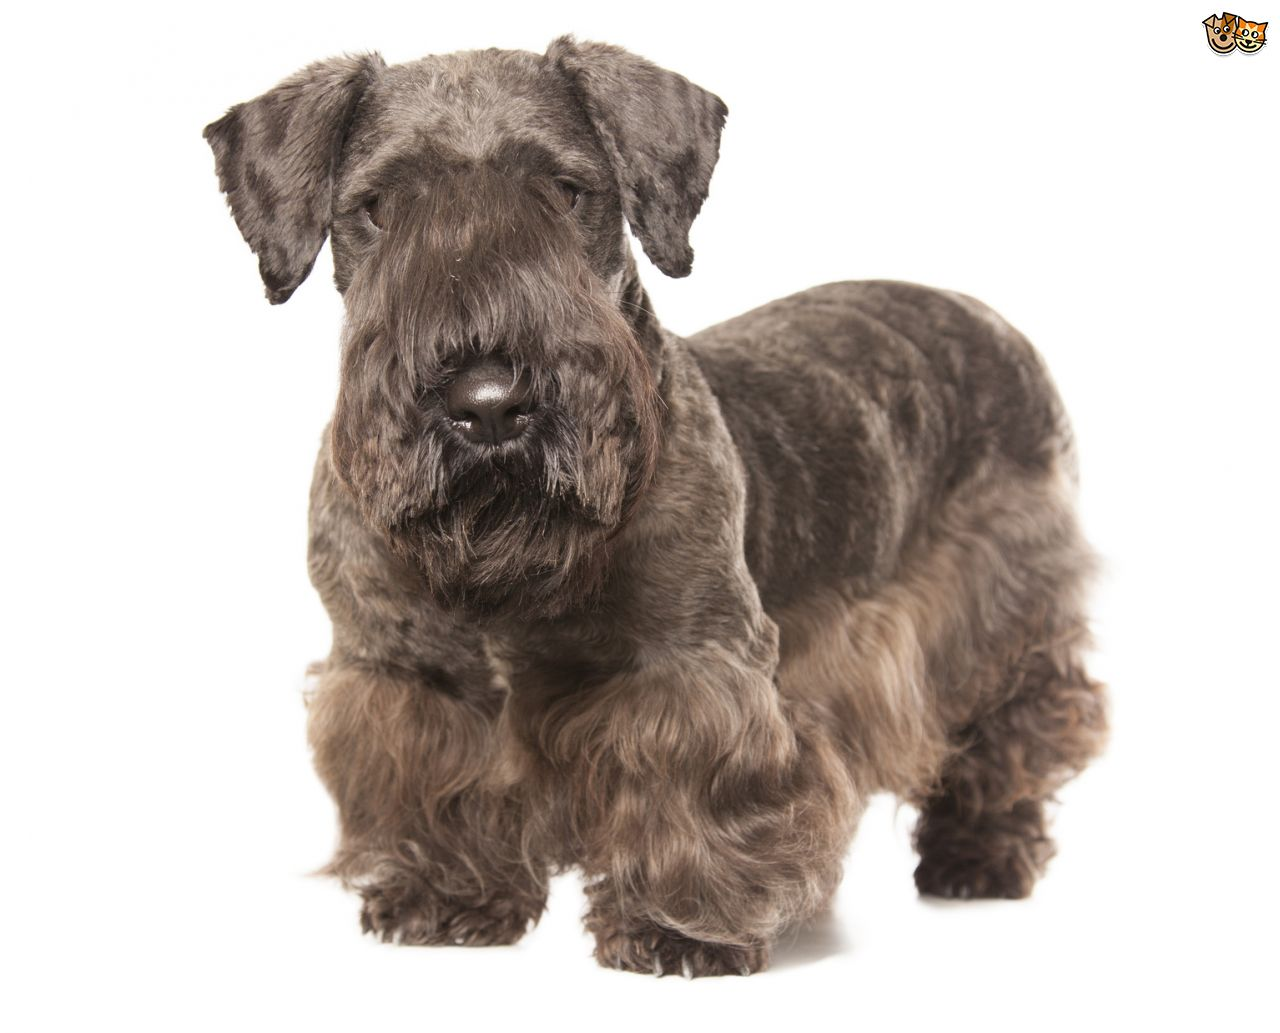 Cesky Terrier Puppies: Cesky The Breed Standard And Appearance Of The Cesky Terrier